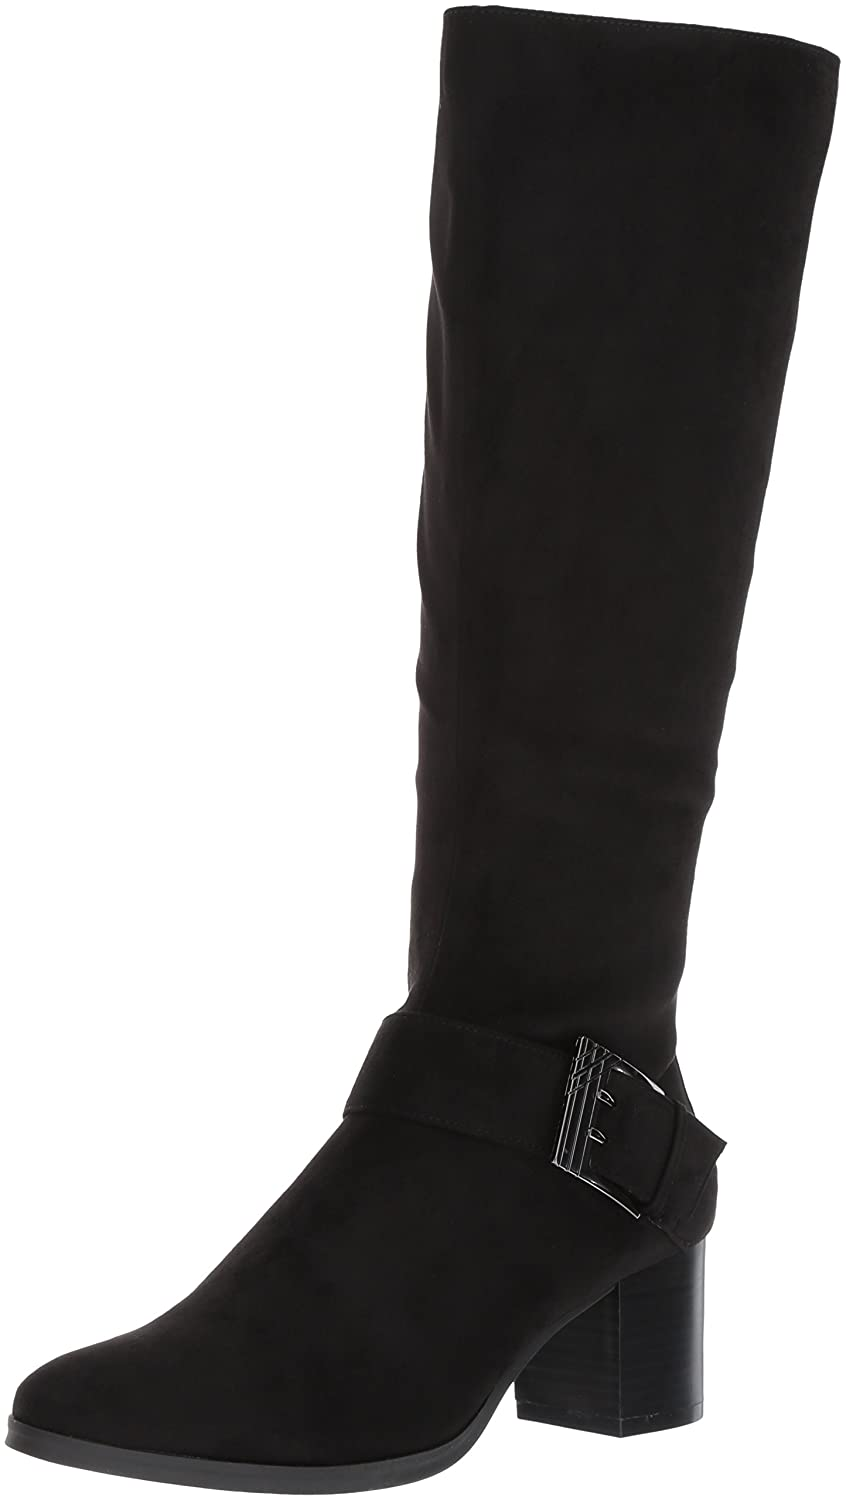 Aerosoles Women's Chatroom Knee High Boot B073FZFSVM 6 B(M) US|Black Fabric